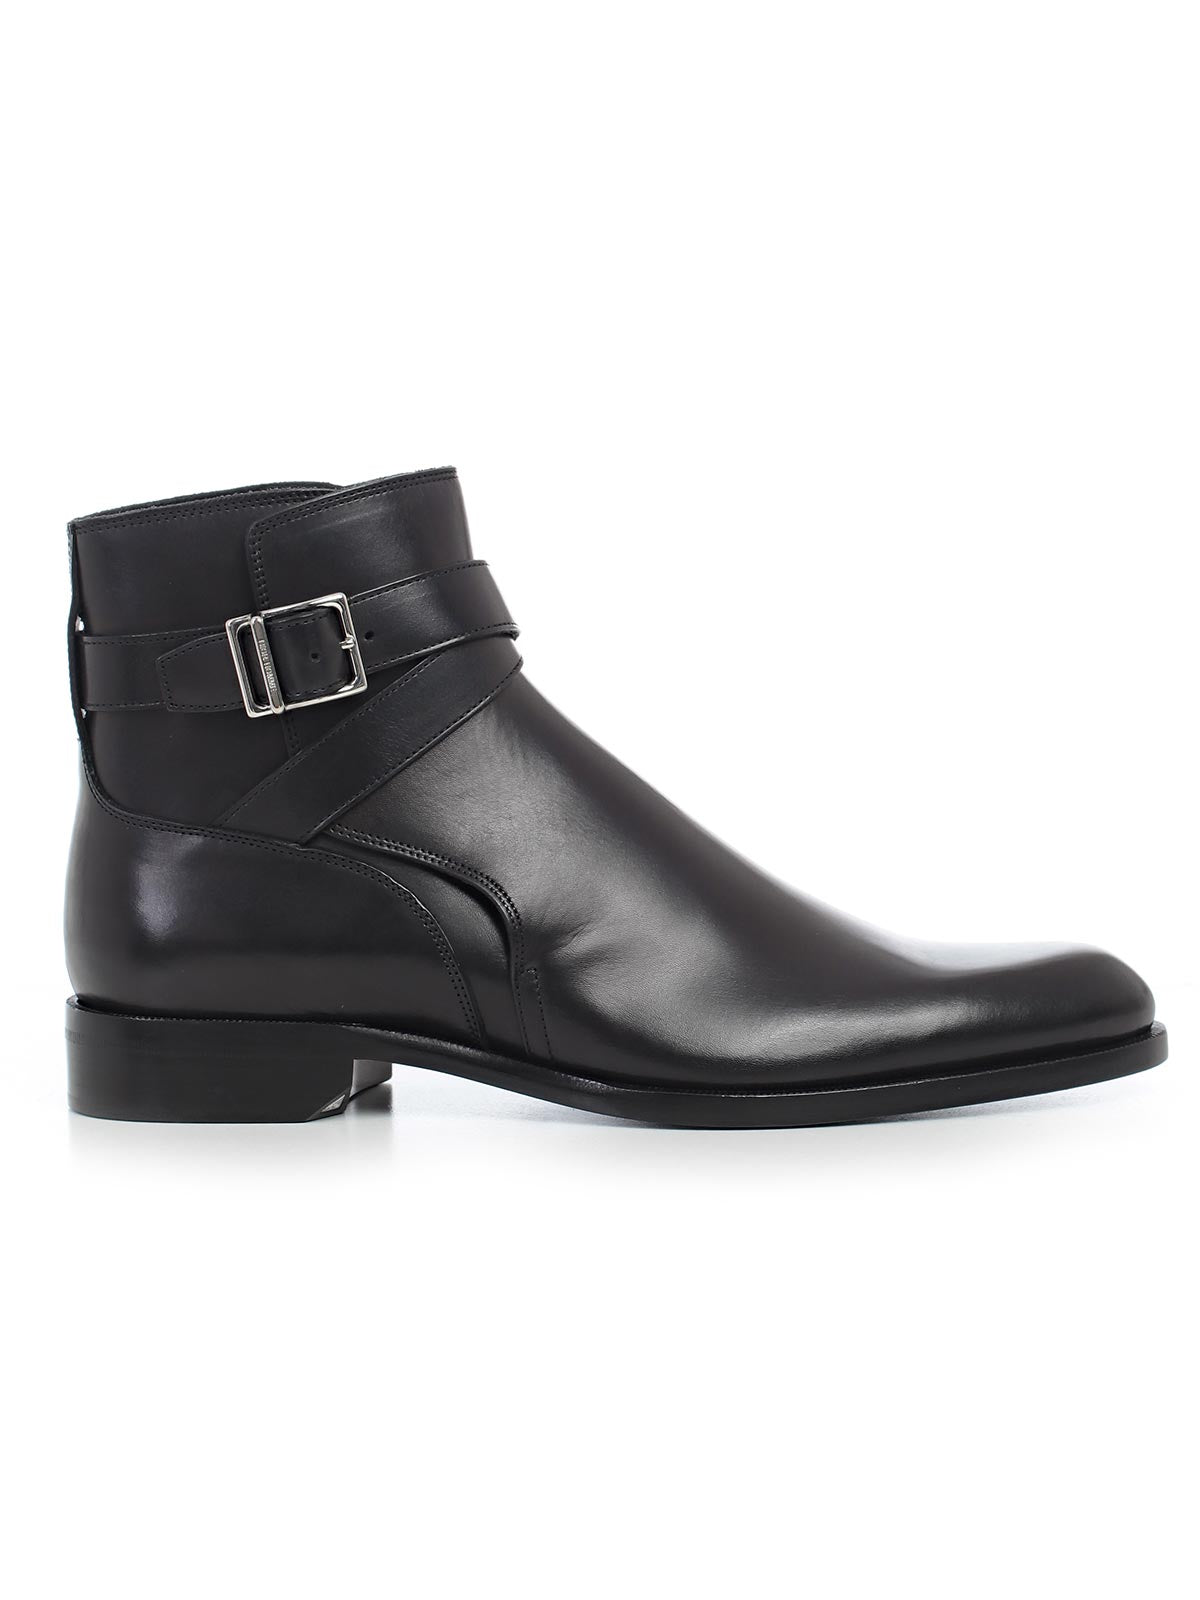 2102778feab Dior Homme Buckle Ankle Boots In 900 Black